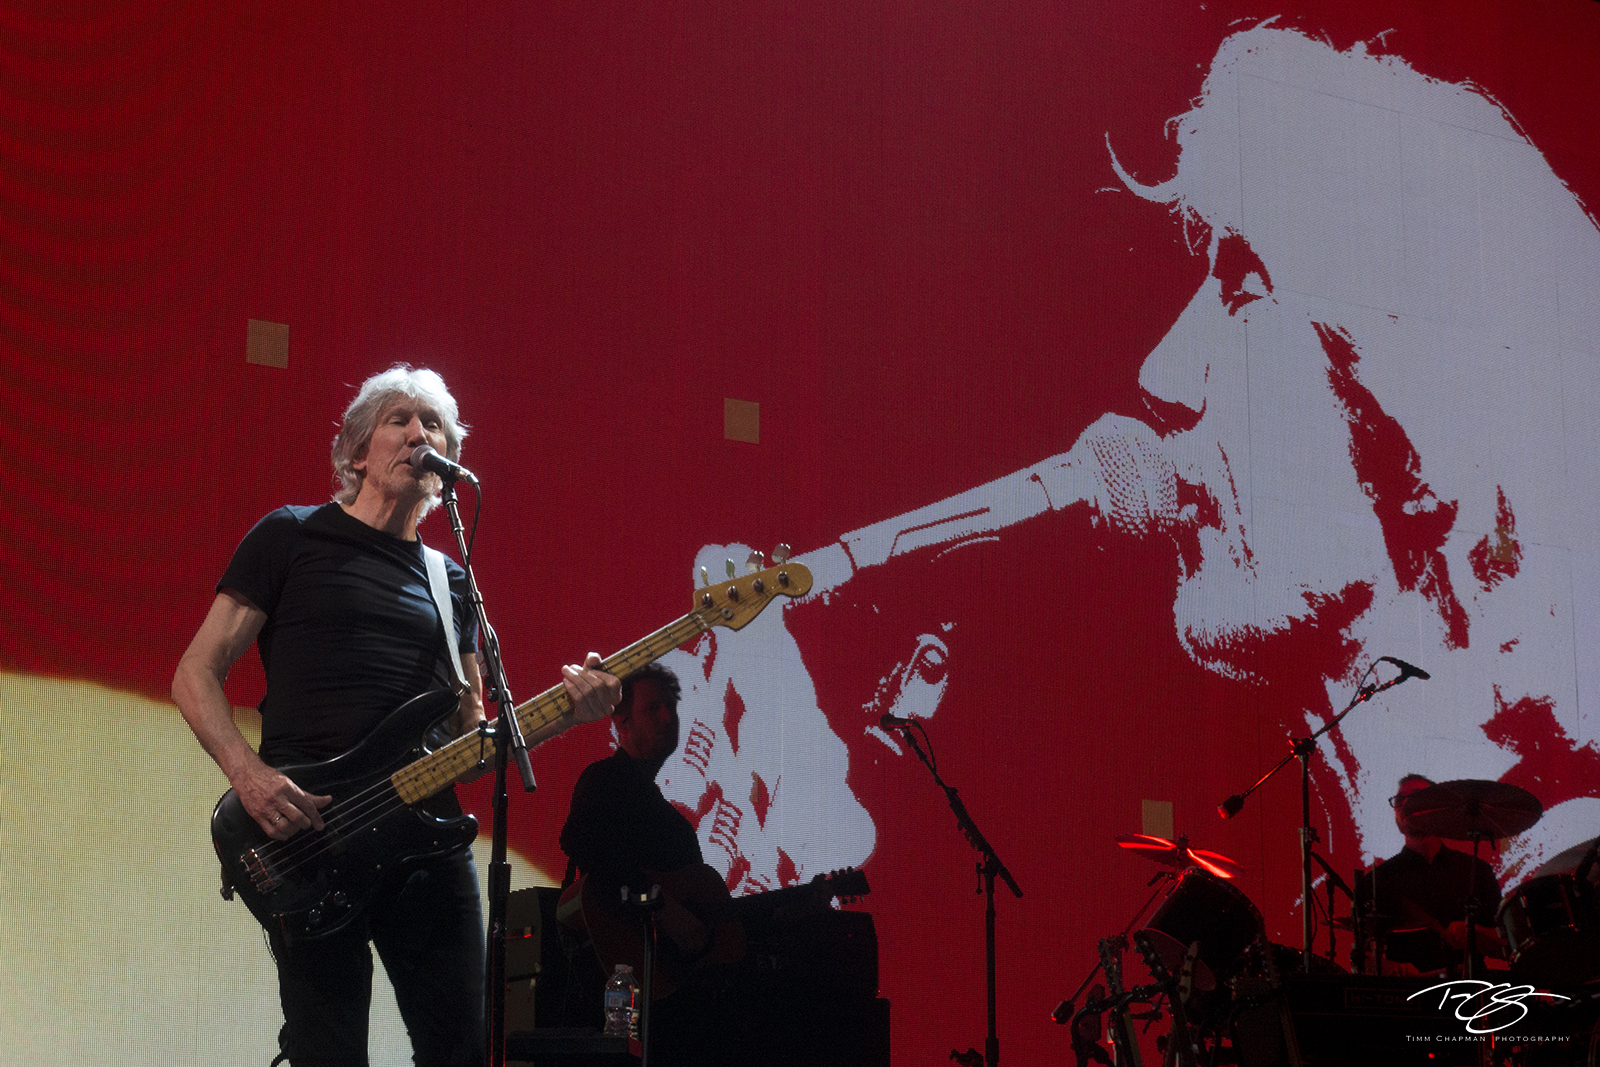 roger waters, pink floyd, in concert, performing, us + them, us and them, bass guitar, dark side of the moon, the wall, photo